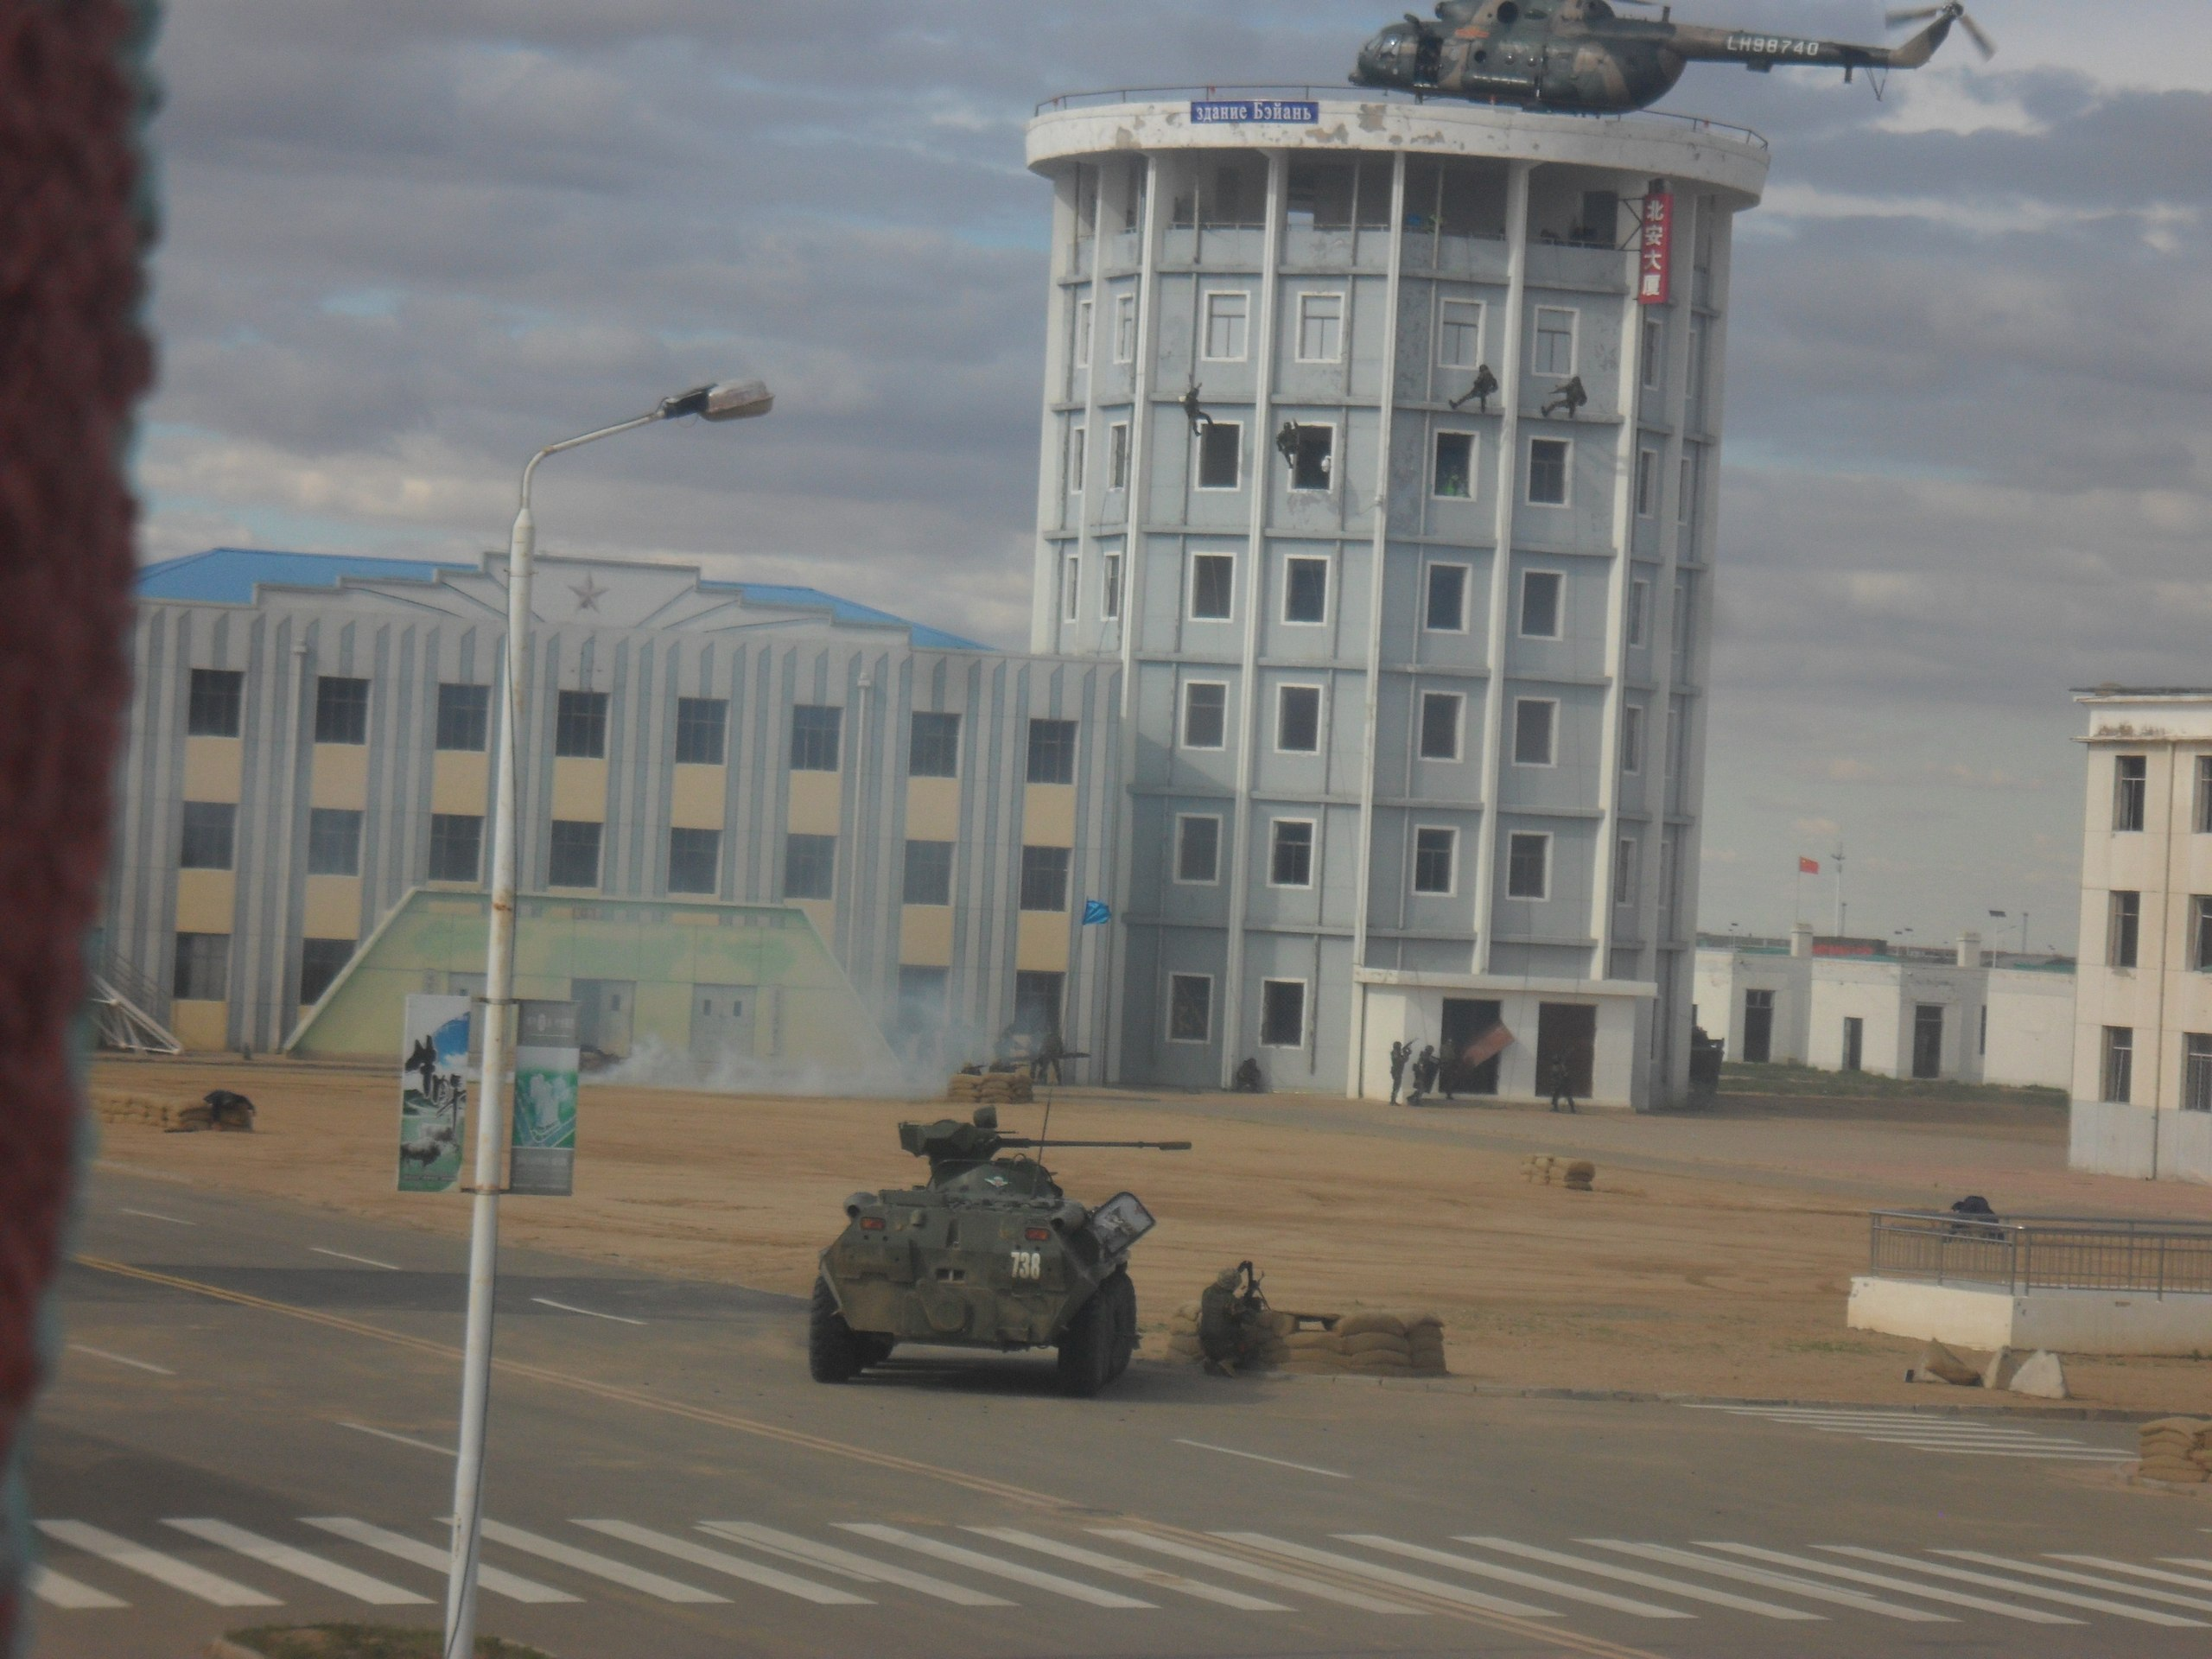 Russian Military Photos and Videos #2 - Page 33 Zs3CCTbXBmY